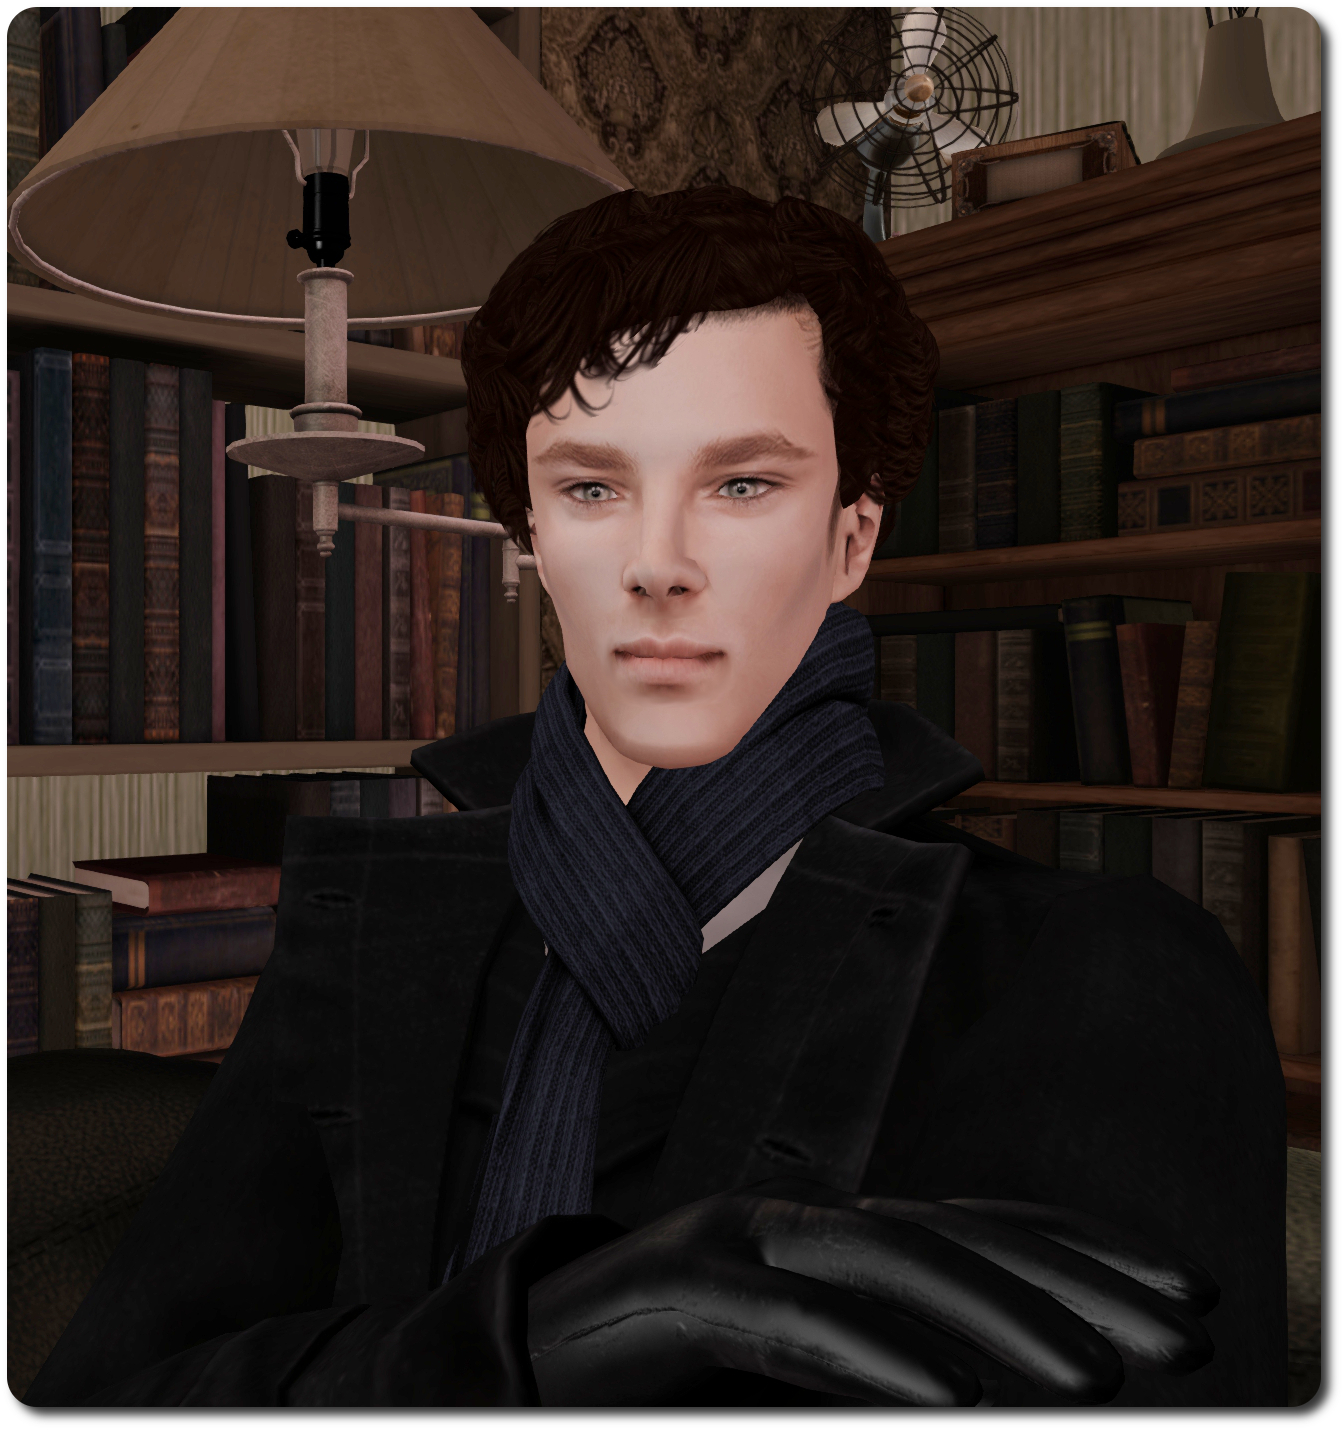 221B Baker Street; Inara Pey, April 2015, on Flickr